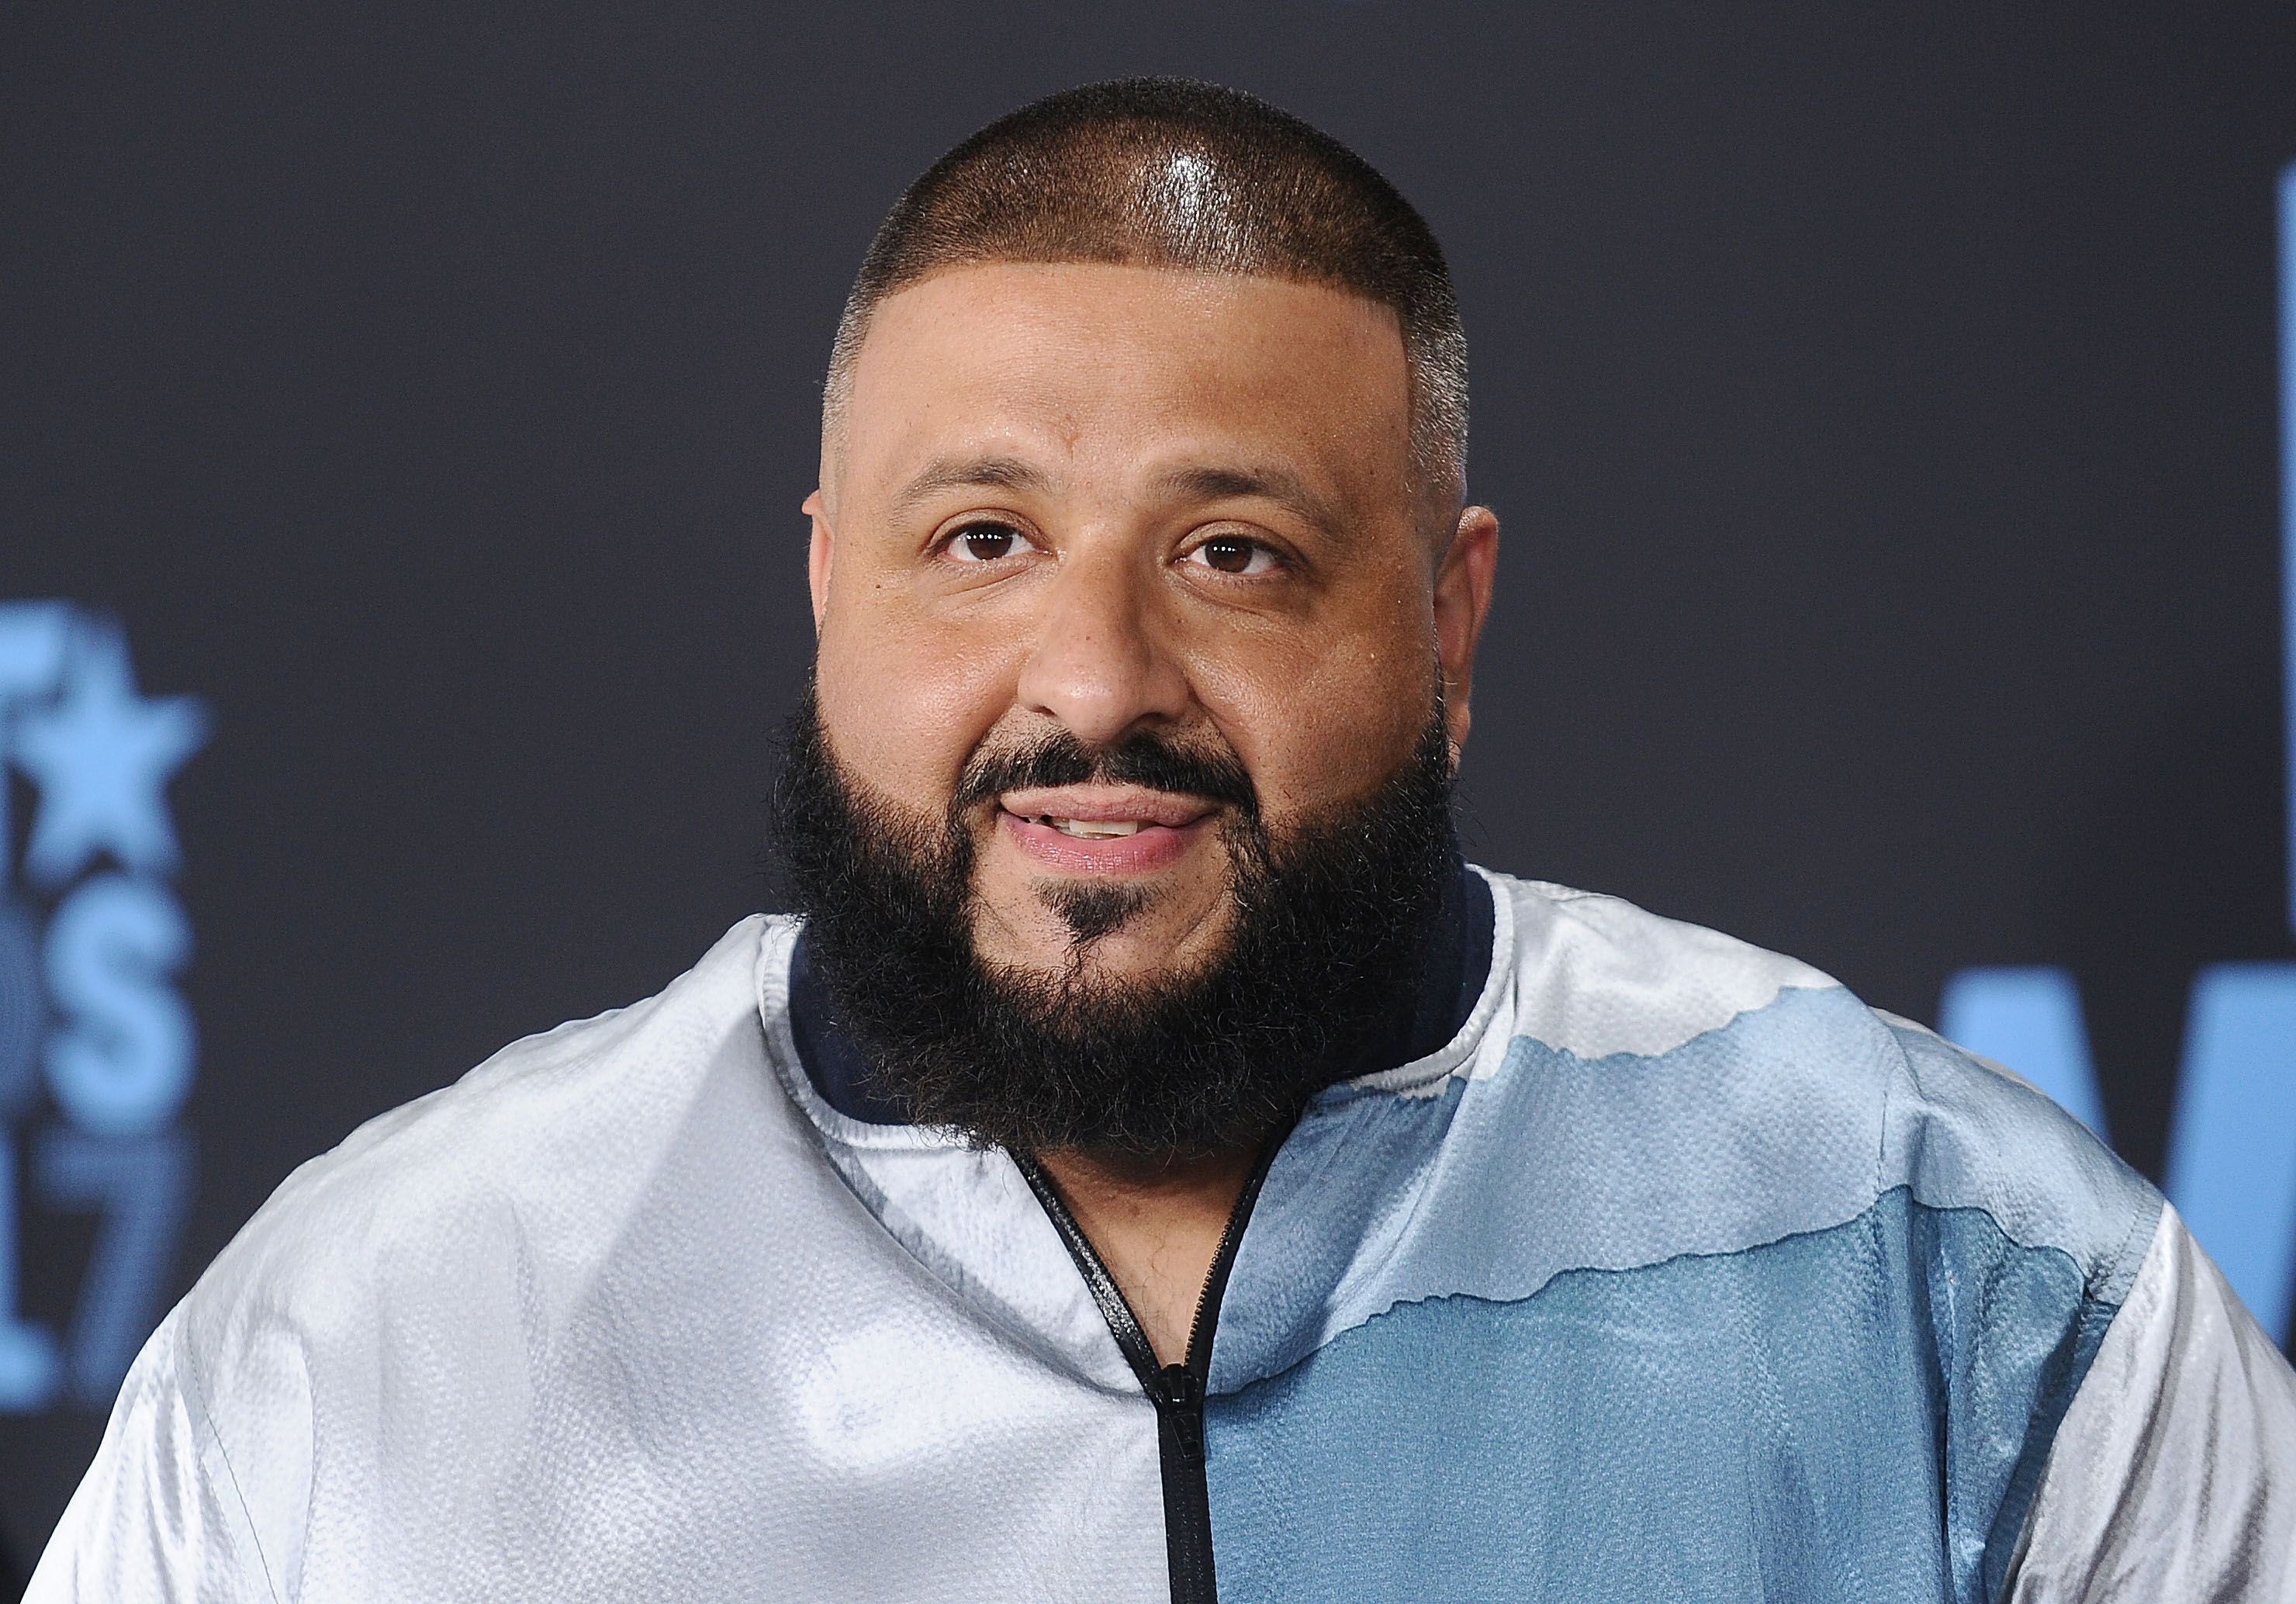 DJ Khaled during the 2017 BET Awards at Microsoft Theater on June 25, 2017 in Los Angeles, California. | Source: Getty Images